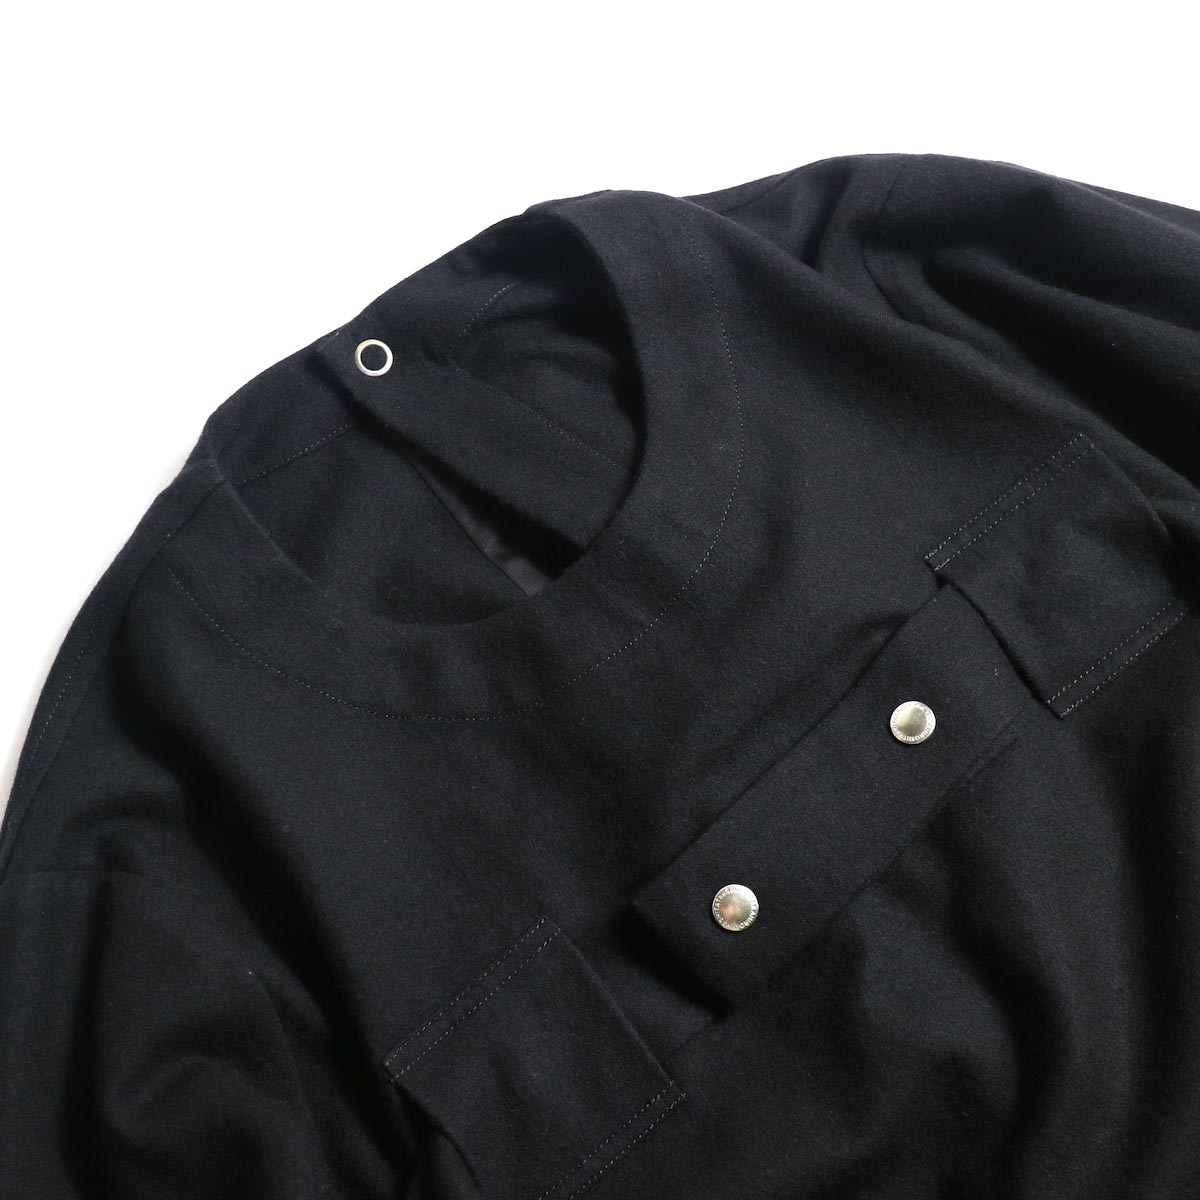 The Soloist / sj.0023b crew neck strapped medical jacket.クルーネック